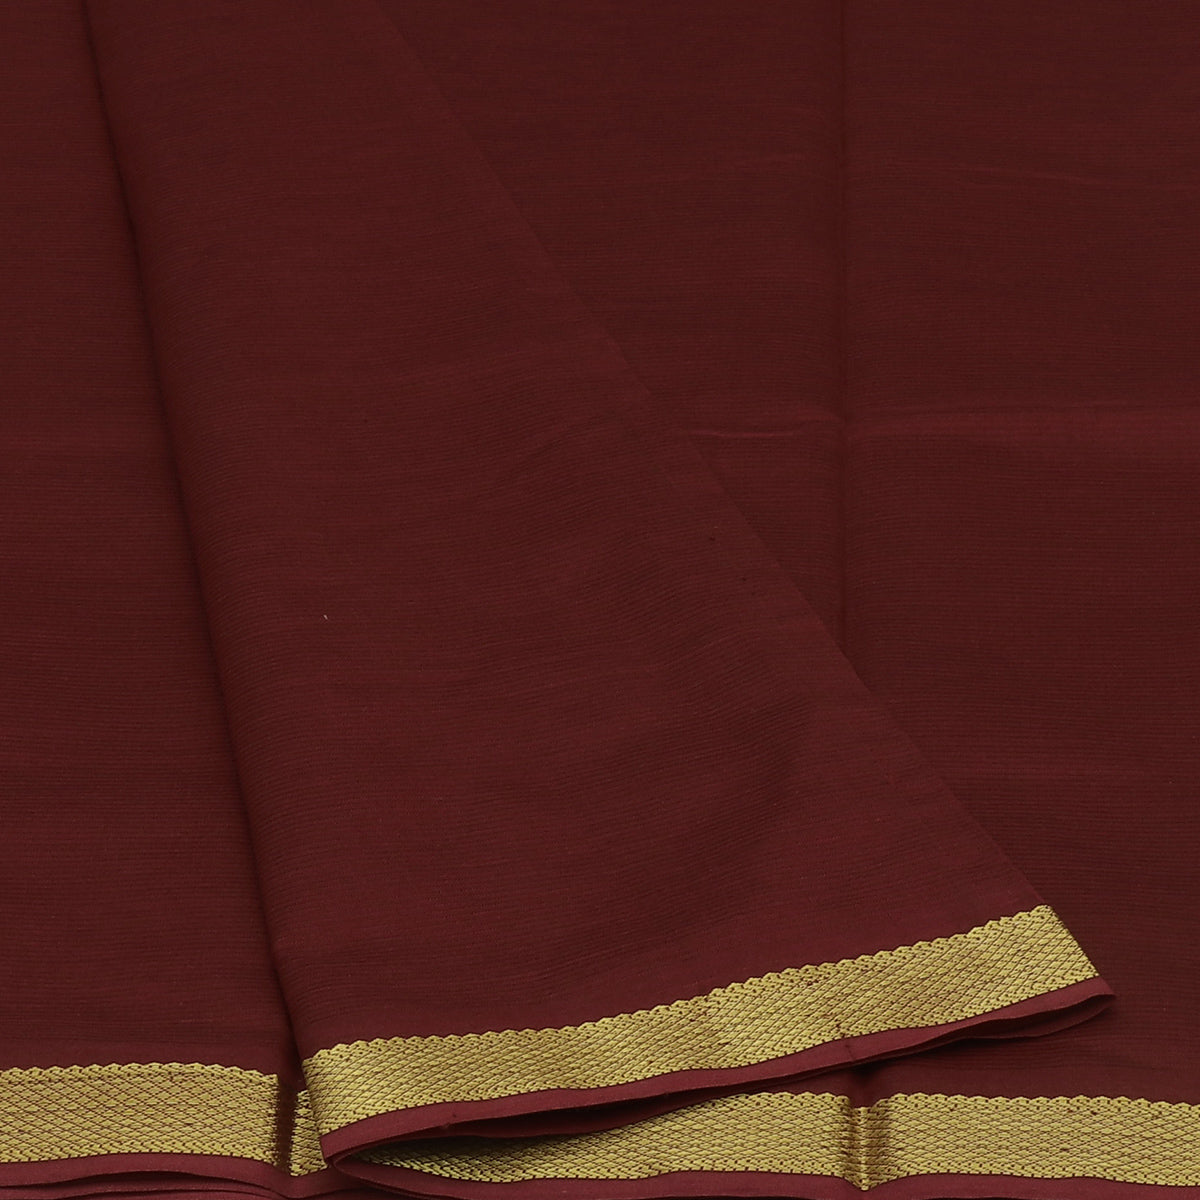 Blended Cotton Saree Maroon and Honey Color with zari border 9 yards